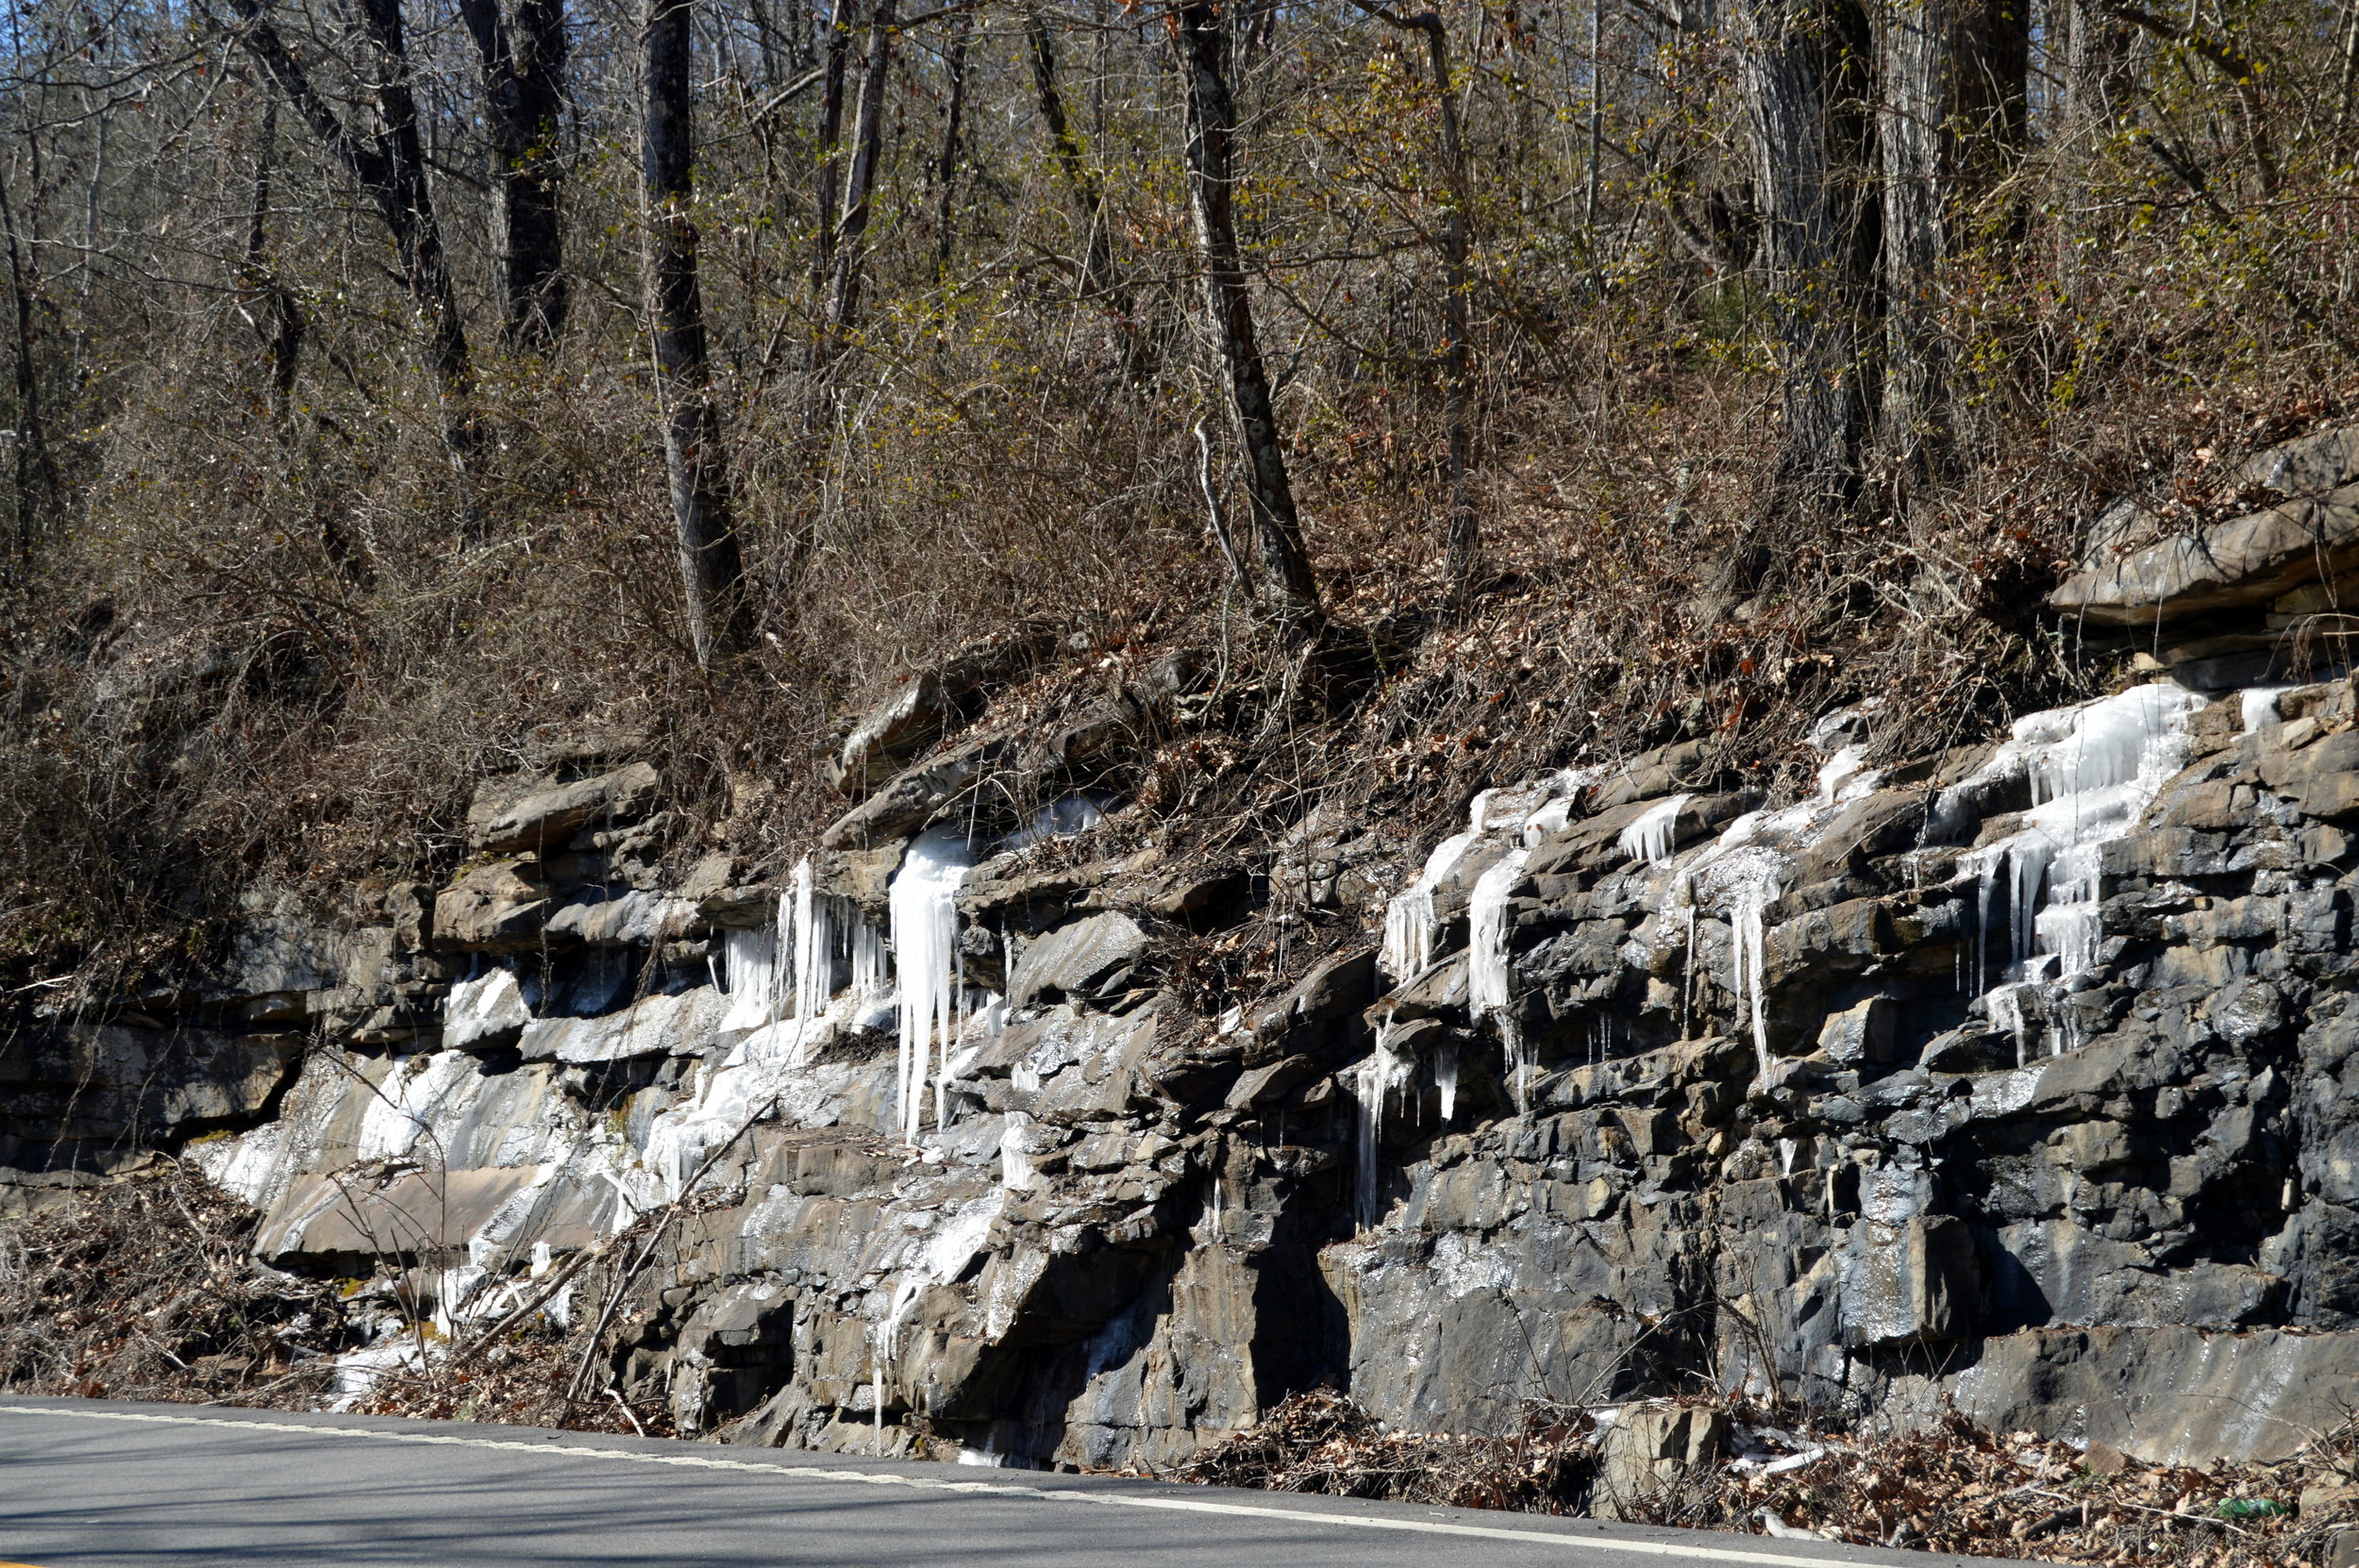 Icicles clinging to the rock walls along U.S. 70 in Cumberland County near Ozone Falls.